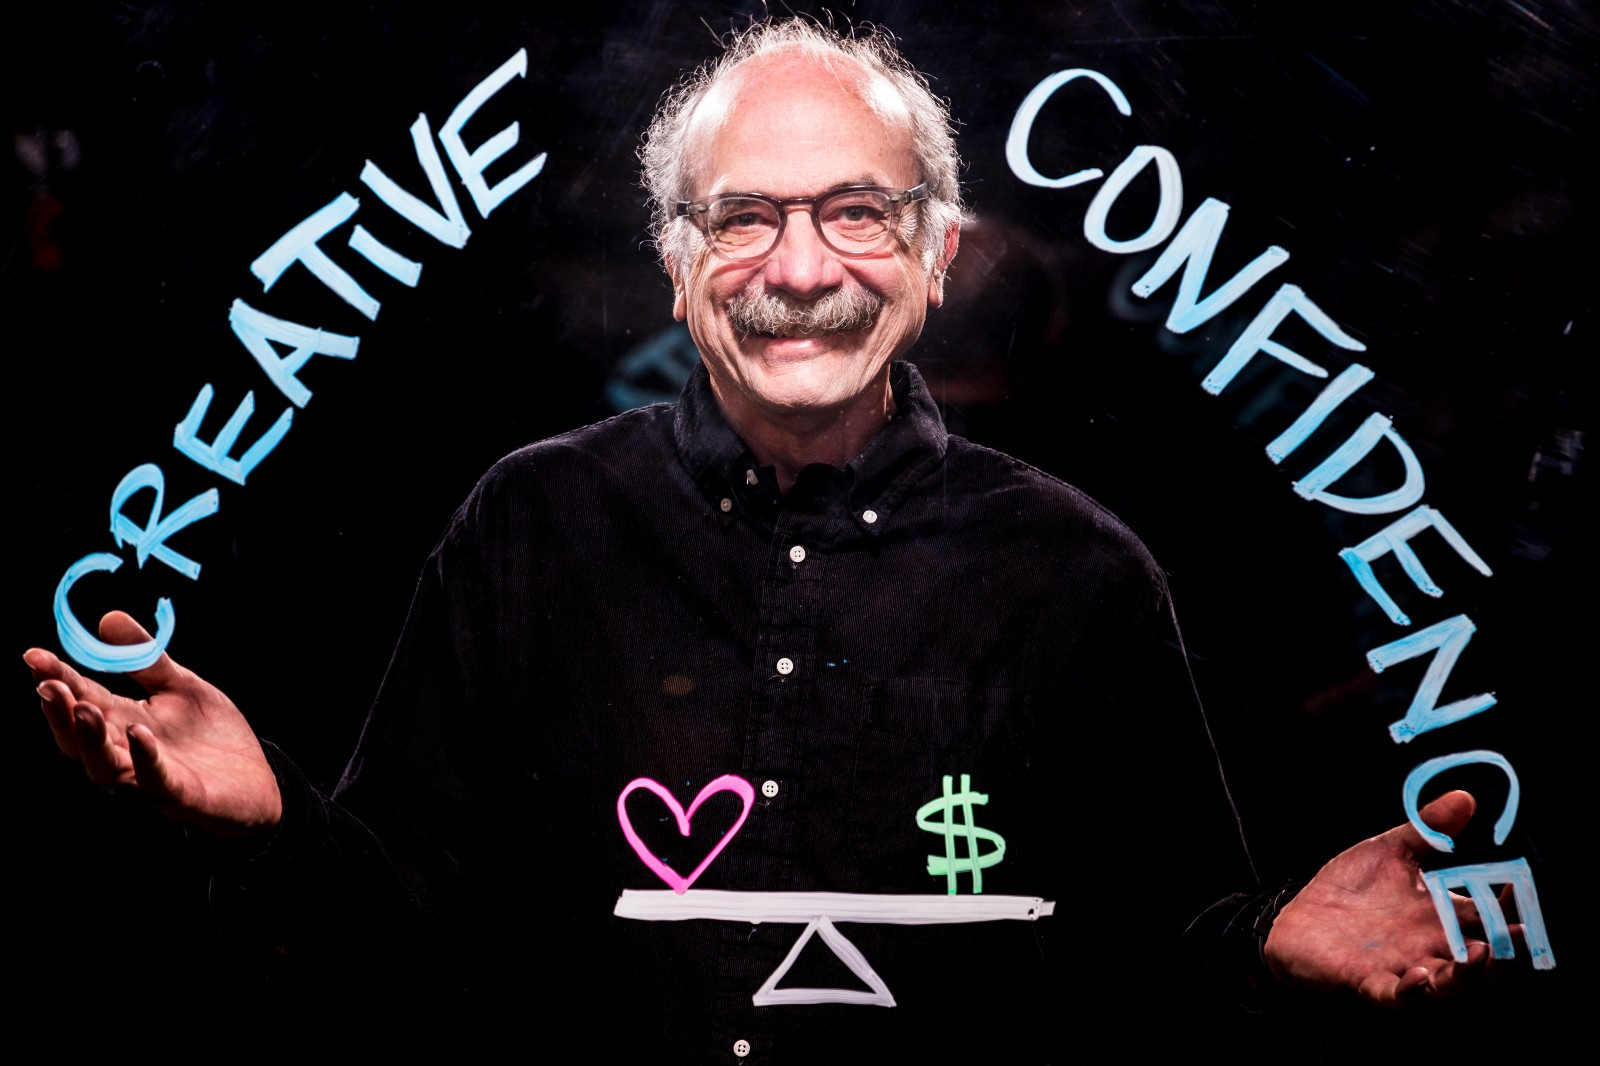 """One of my heroes, David Kelley, along with his brother Tom Kelley, is the founder and chairman of the global design and innovation company, IDEO. He also founded Stanford University's Hasso Plattner Institute of Design, known as the d.school. They co- authored the   New York Times   best-selling book, """"Creative Confidence"""" (Unleashing the Creative Potential Within Us All)."""